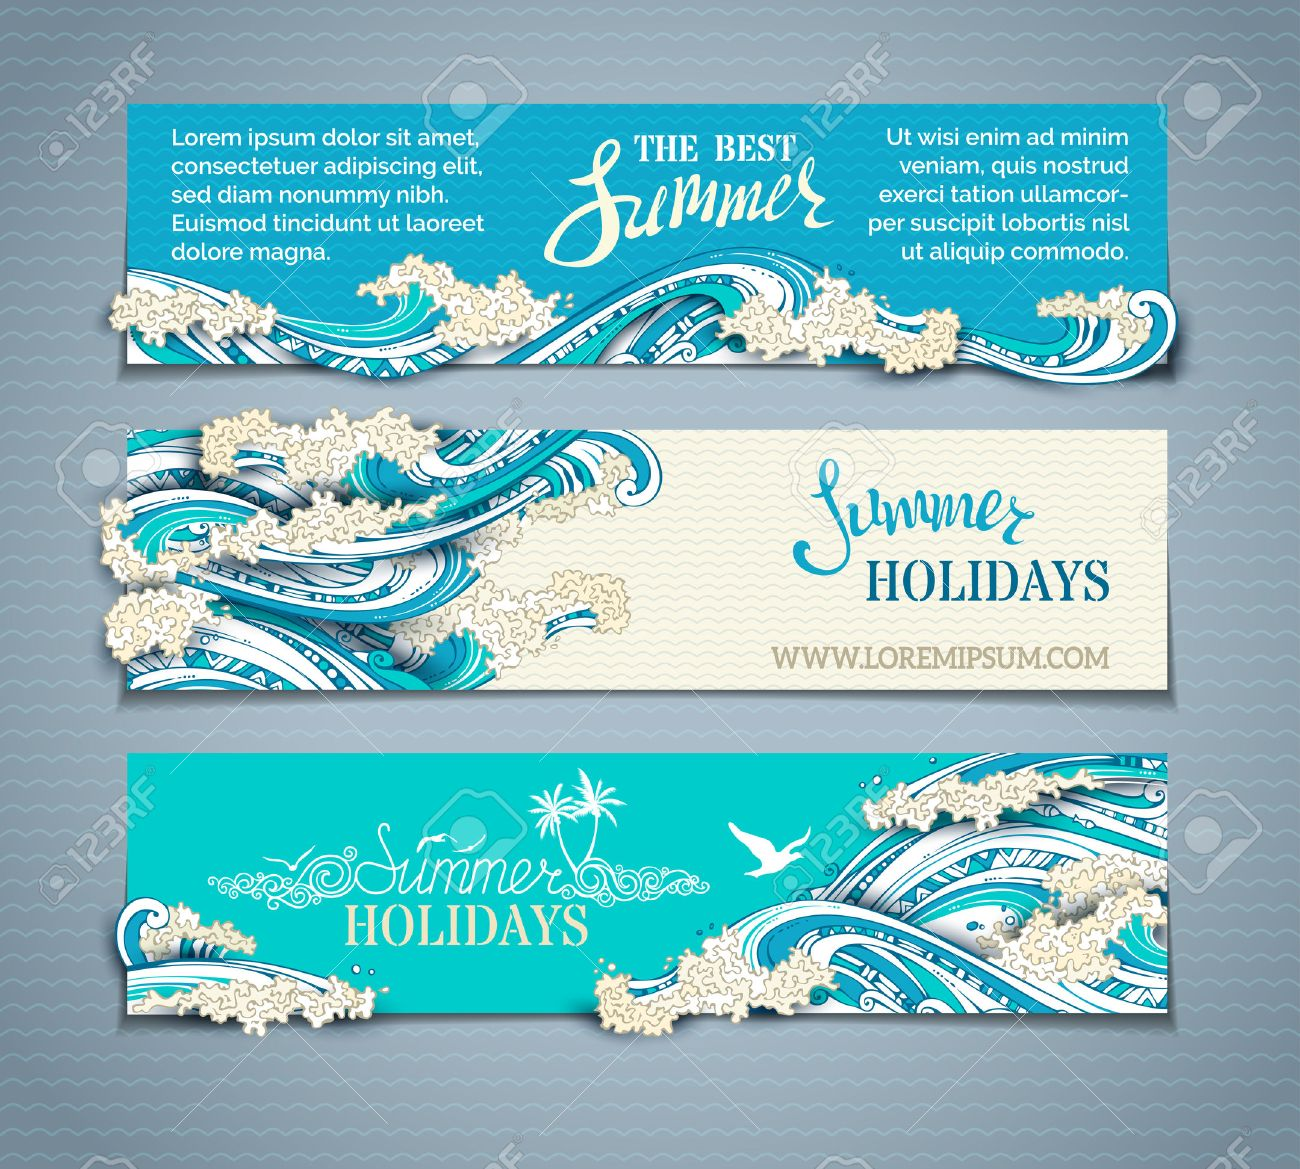 Vector set of sea/ocean horizontal banners. Paper ship, starfish, seagulls and waves. Summer holidays. The best summer. Hand-drawn illustration. There is place for your text on coloured background. - 55632100